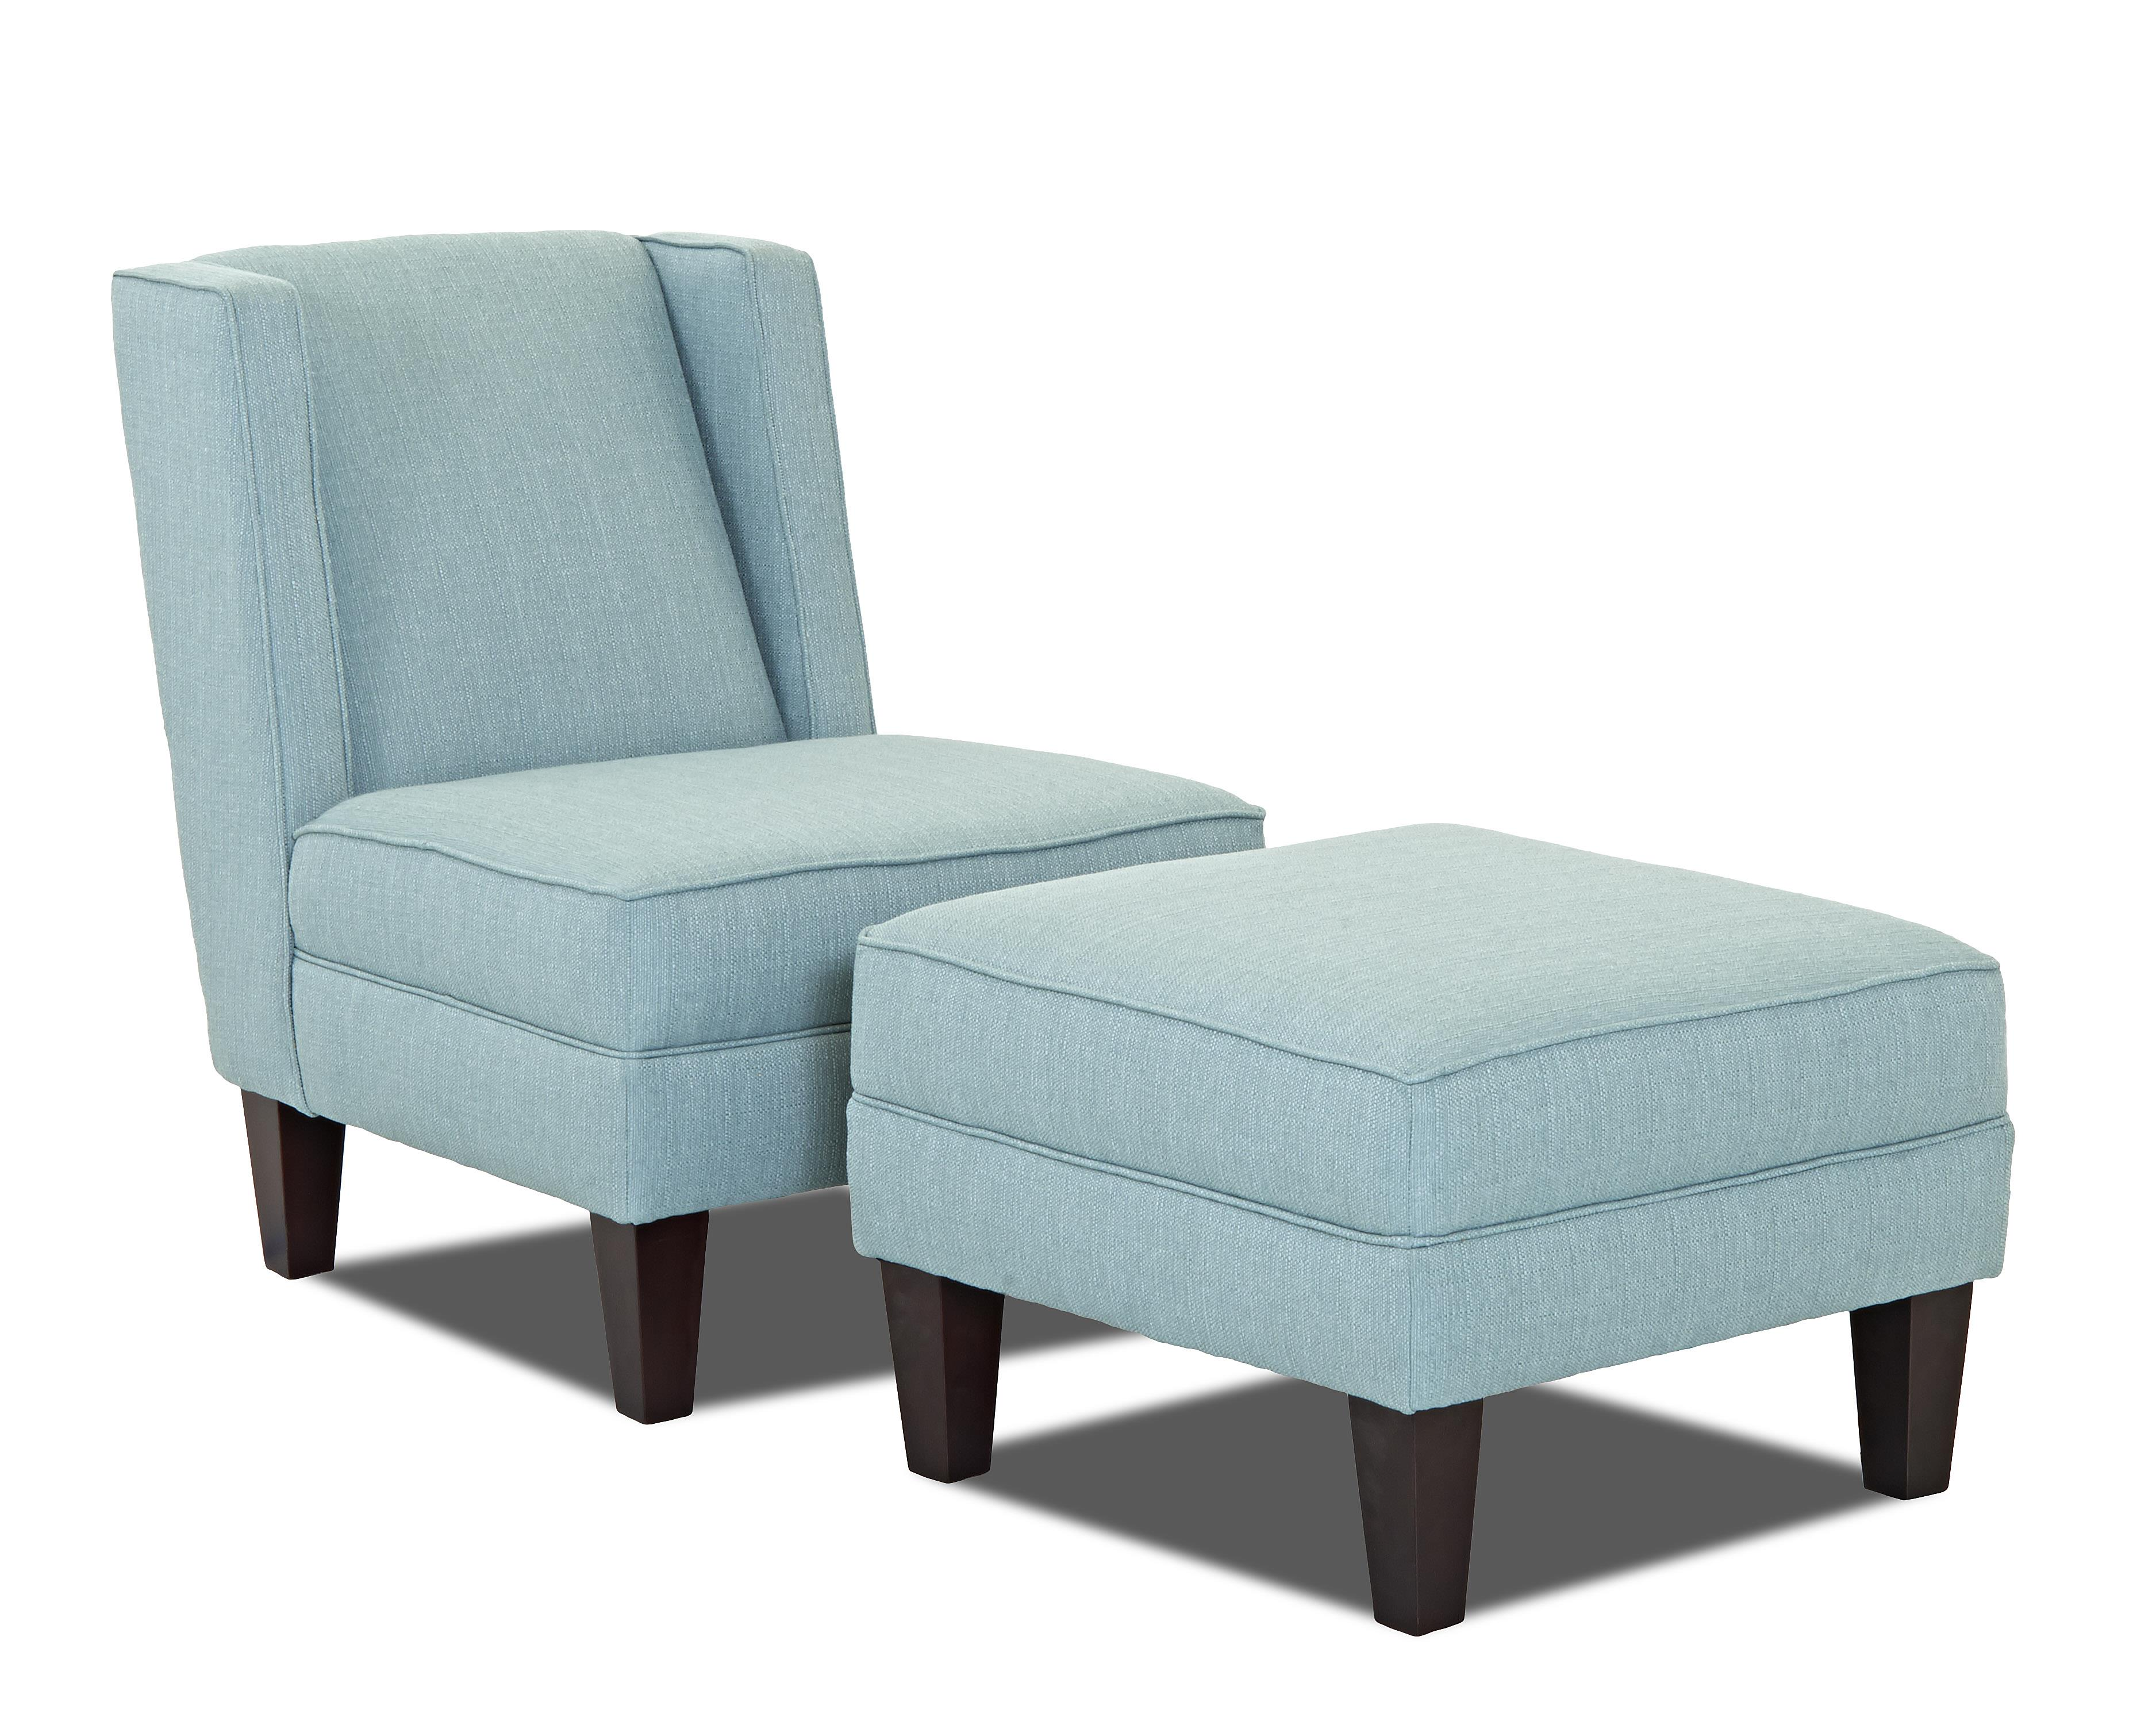 Klaussner Kaitlyn Chair and Ottoman Set - Item Number: K940 OC+OTTO